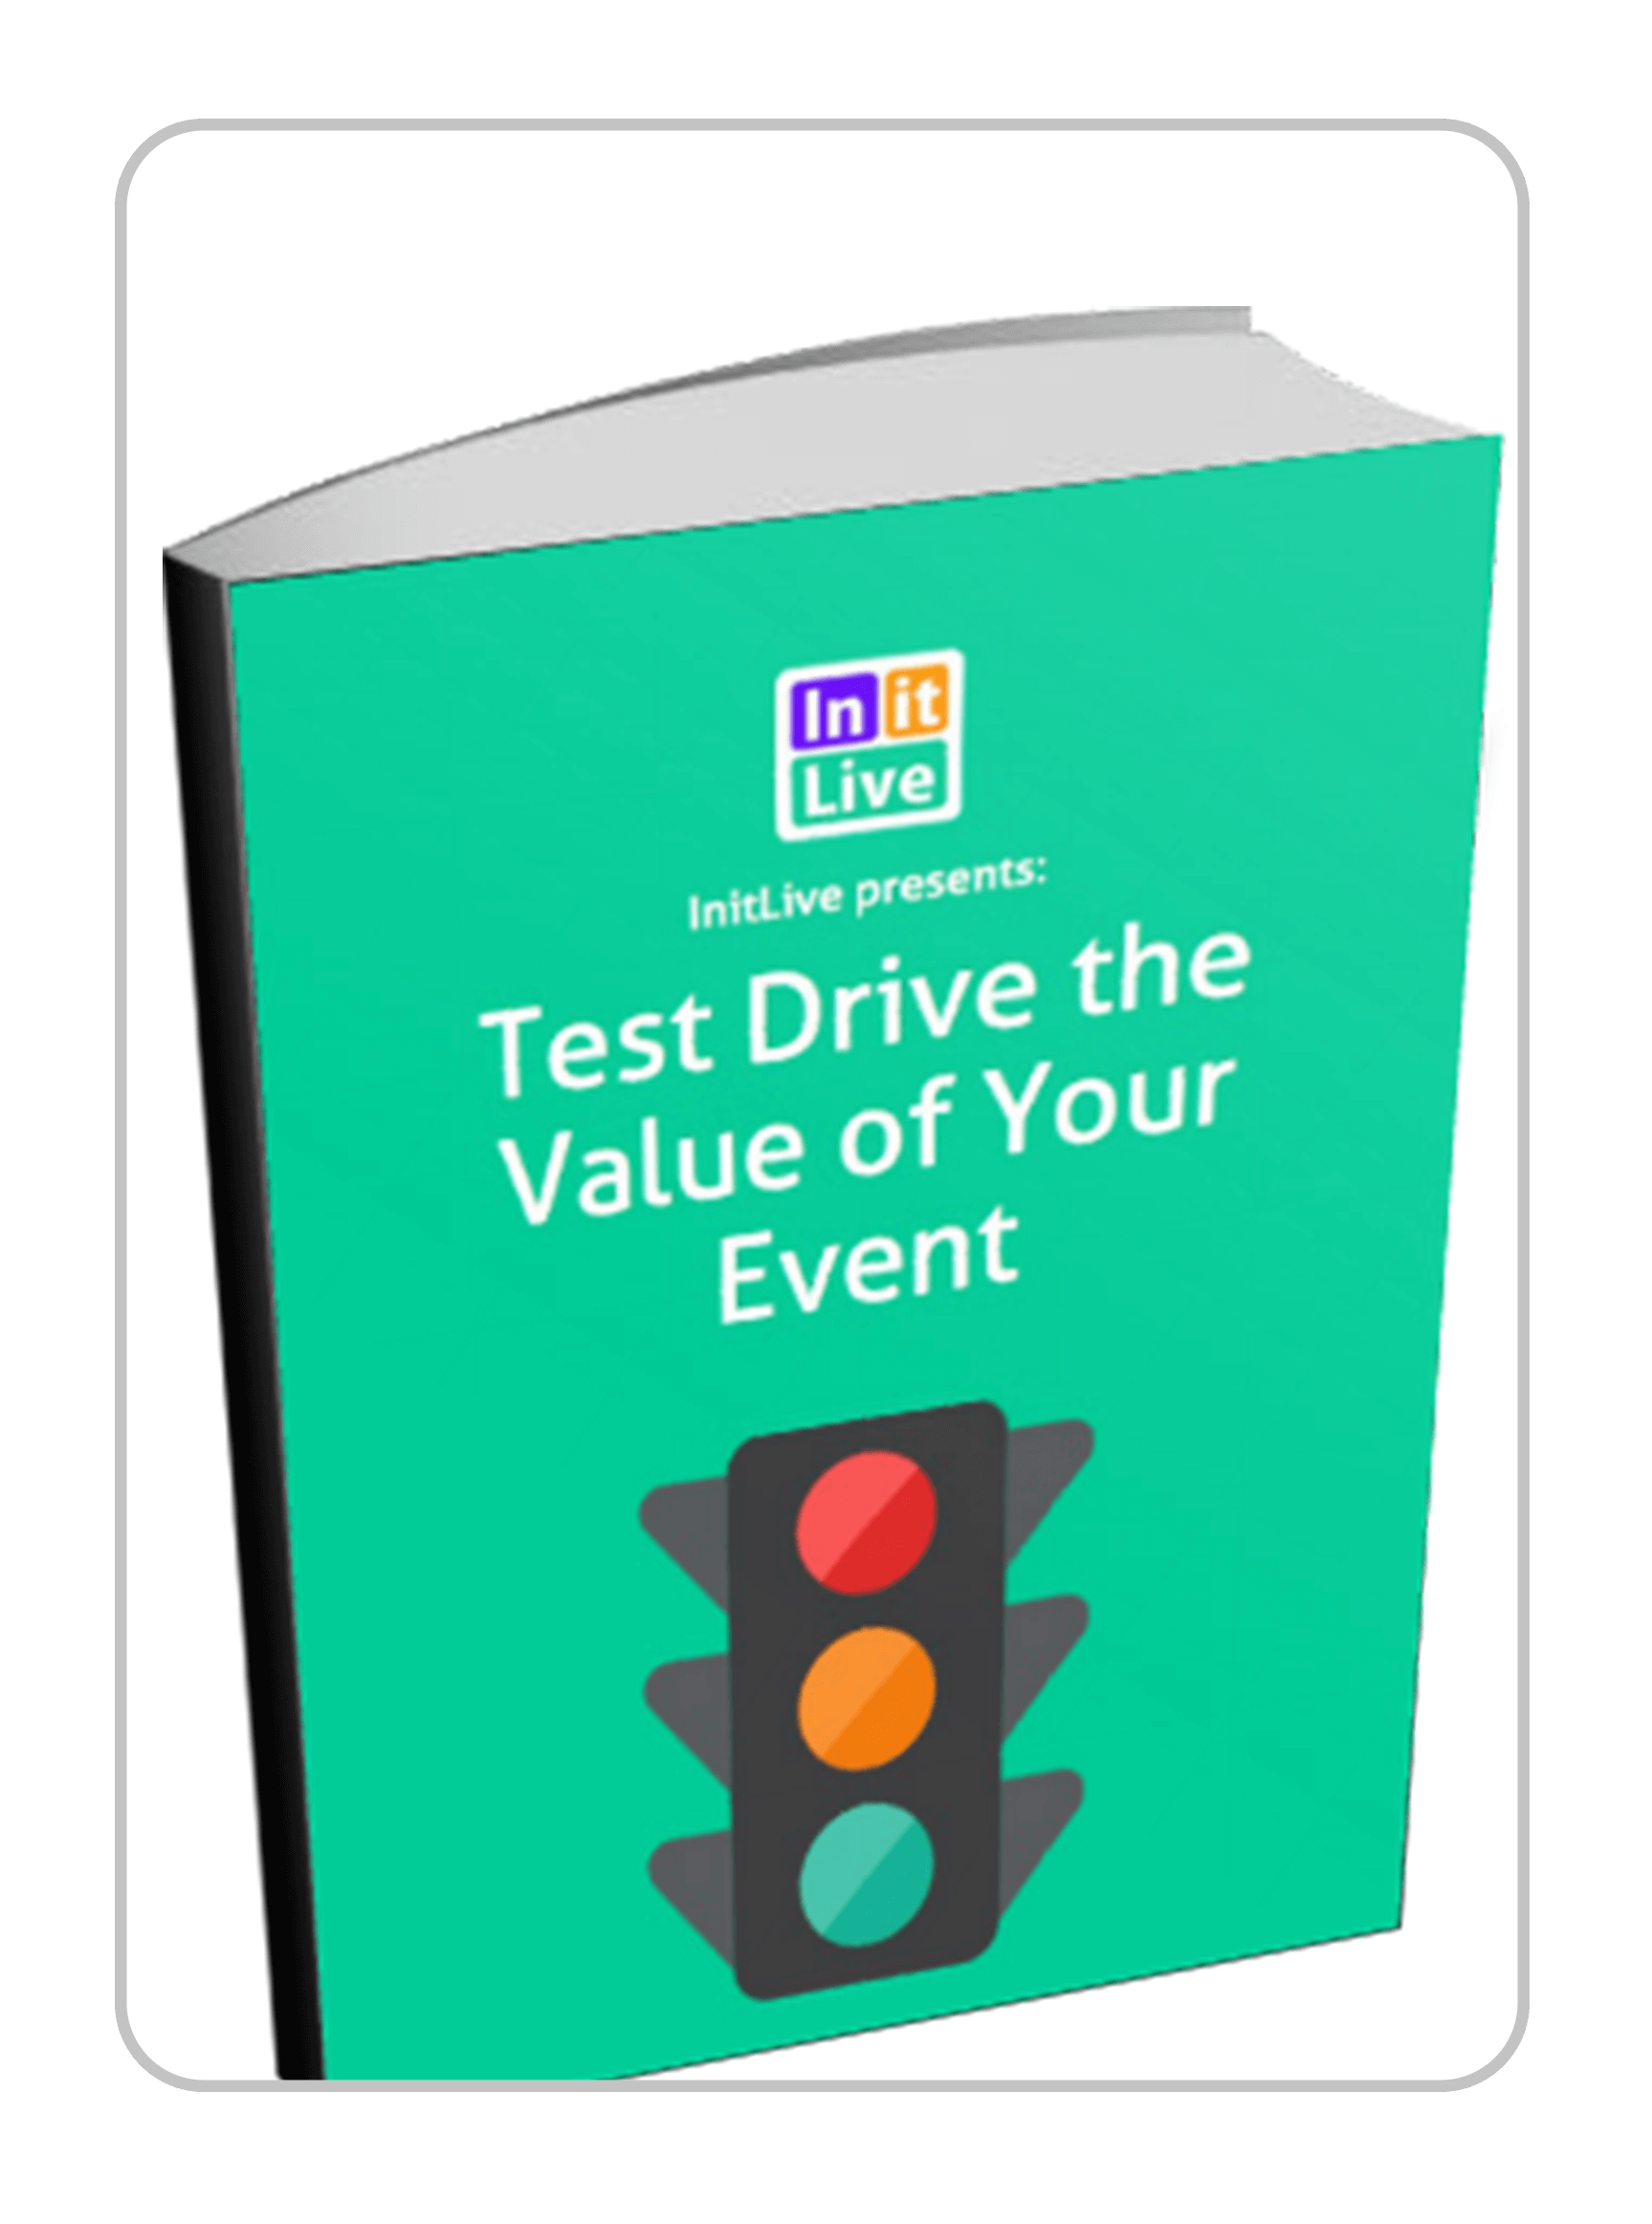 Test-drive-the-value-of-your-event-template